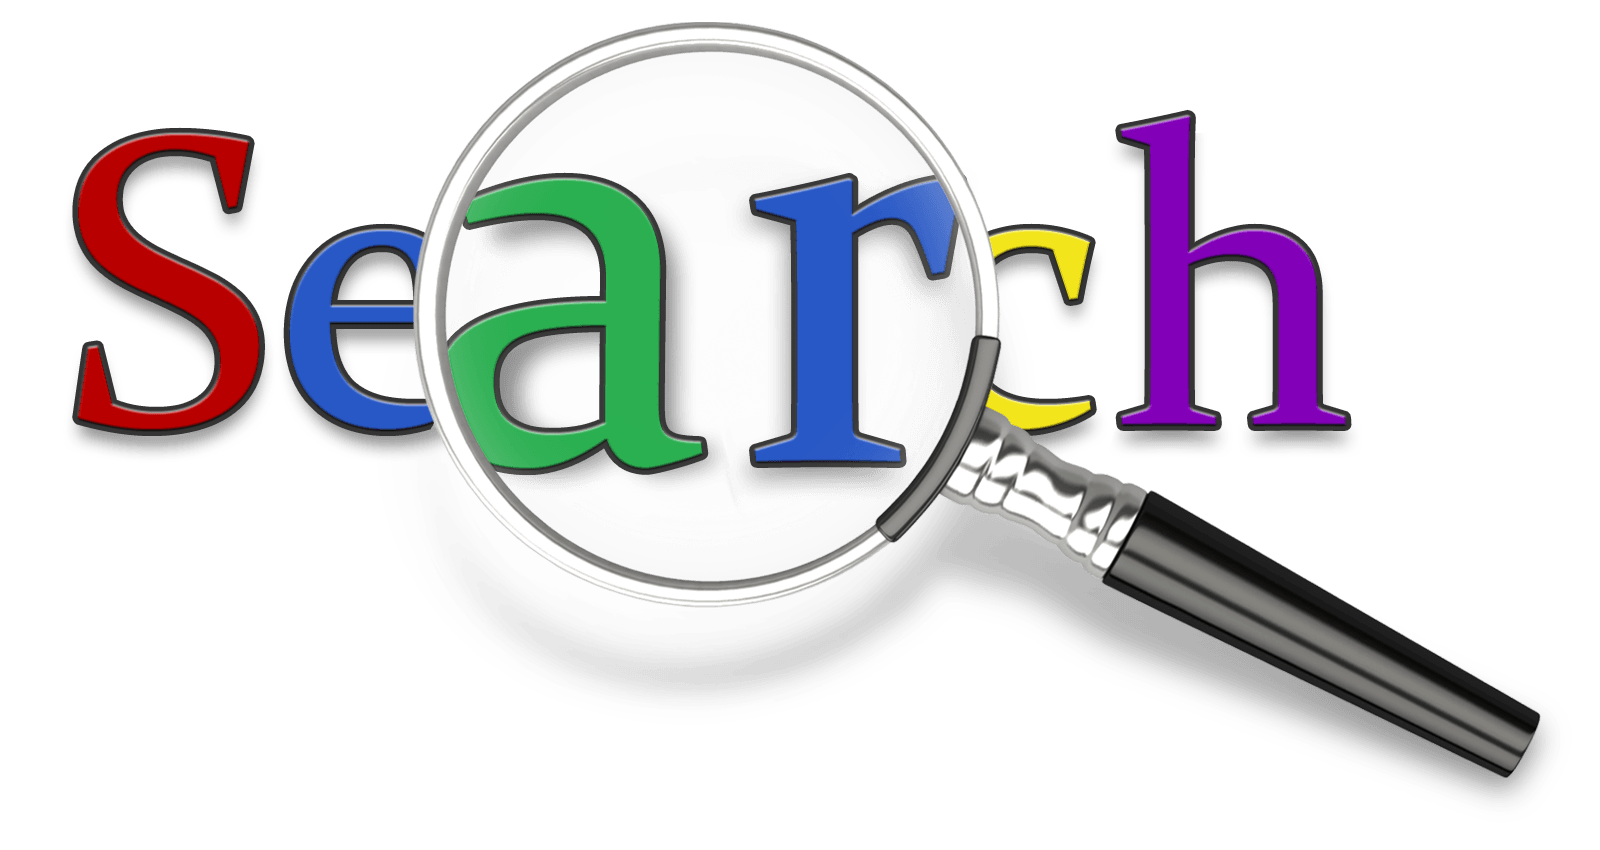 Free Search Engine Cliparts, Download Free Clip Art, Free.